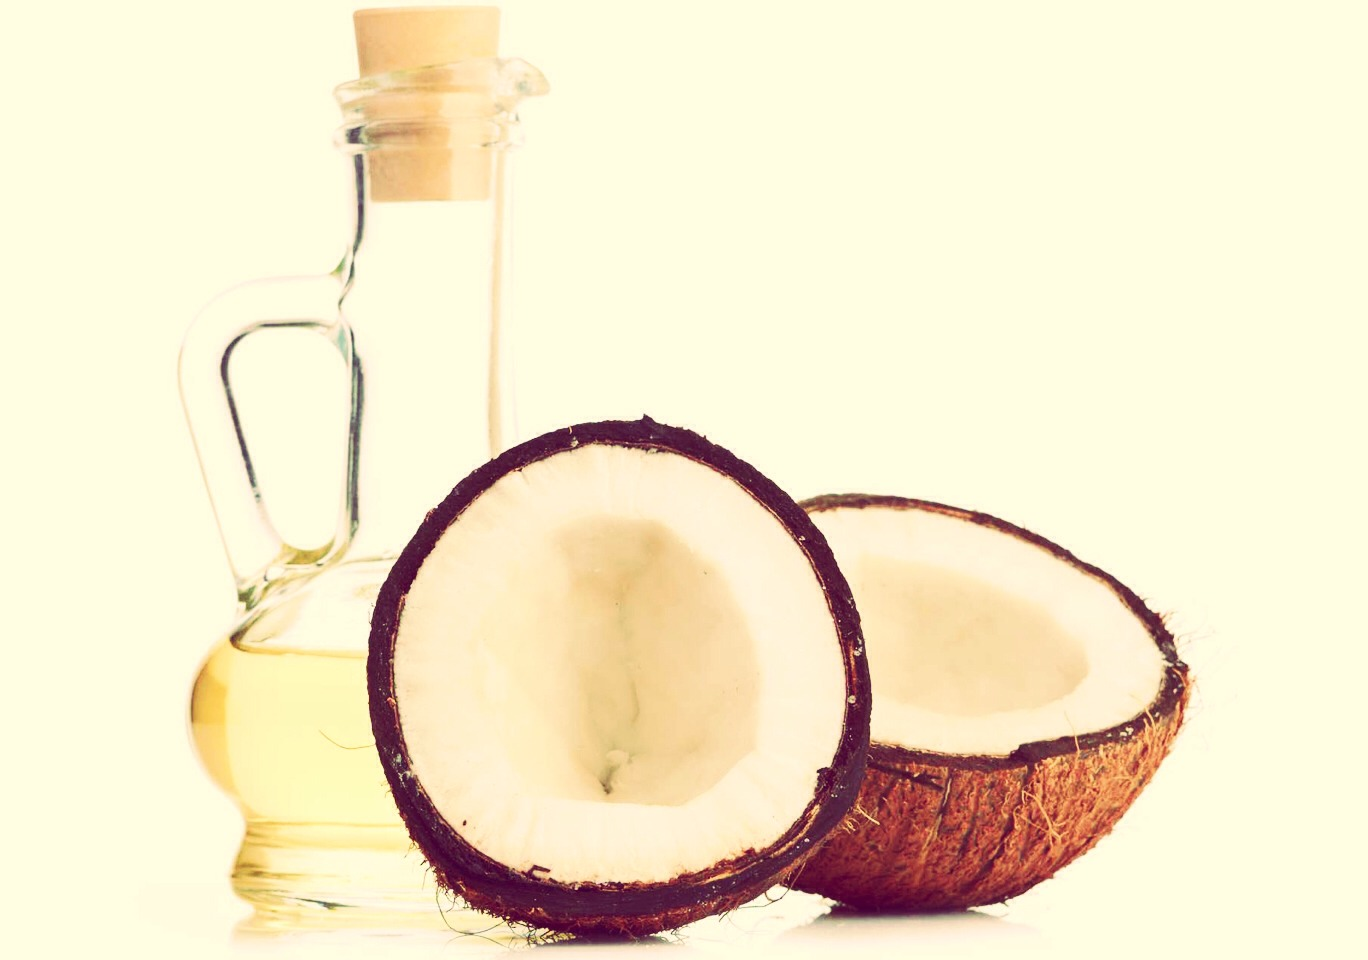 Coconut oil is rich in nutrients and good fats for overall health. To receive the full benefits, try to have at least a teaspoon of oil a day